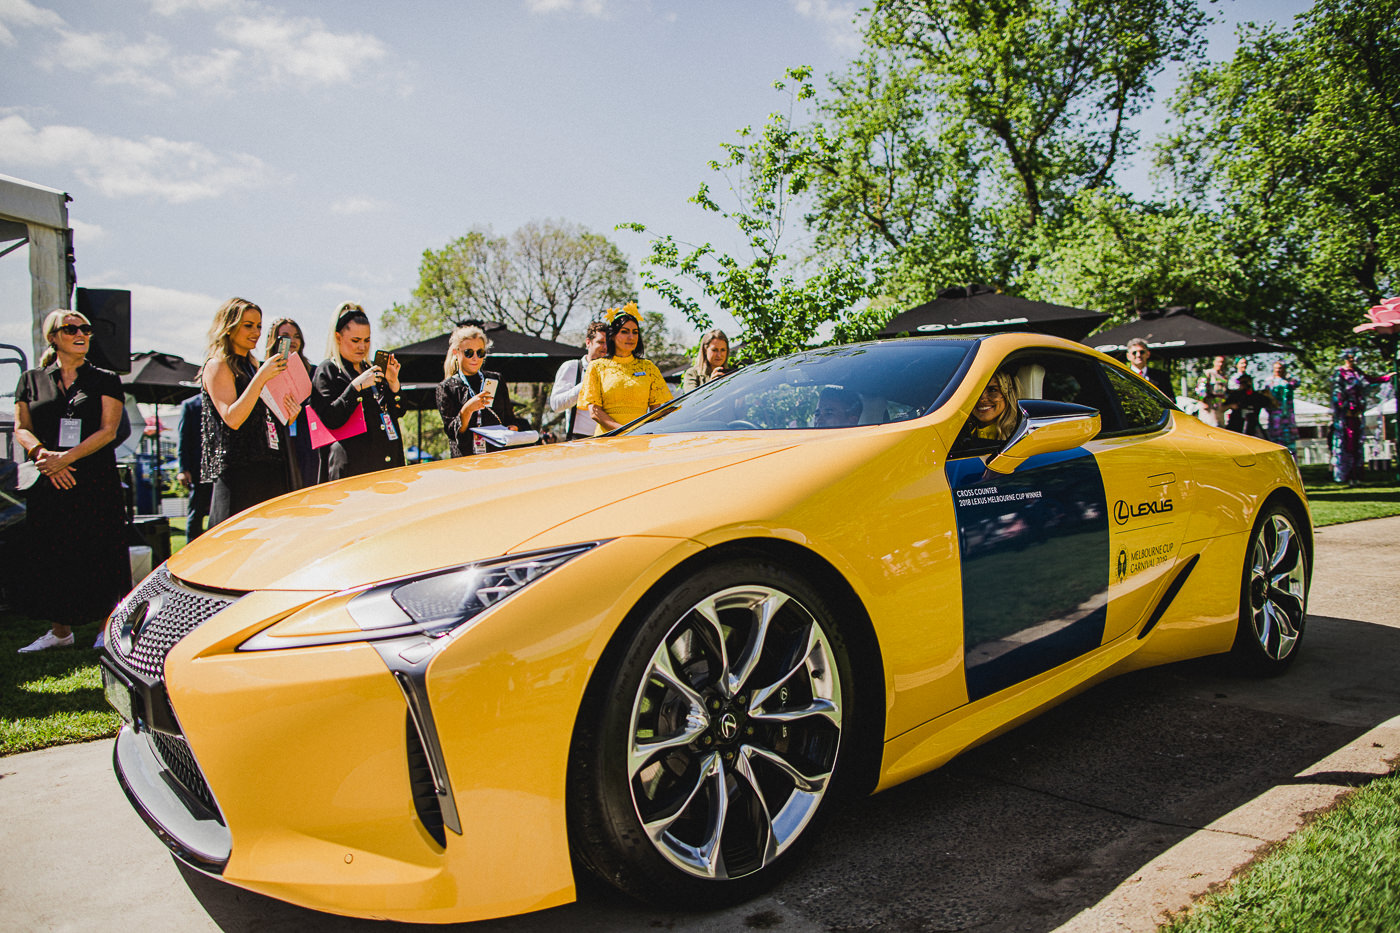 Striking yellow Lexus - LC 500 - Tegan Martin and Lexus ambassador Corey Brown delivered the 2019 Lexus Melbourne Cup trophy to the stage in a striking yellow Lexus LC 500